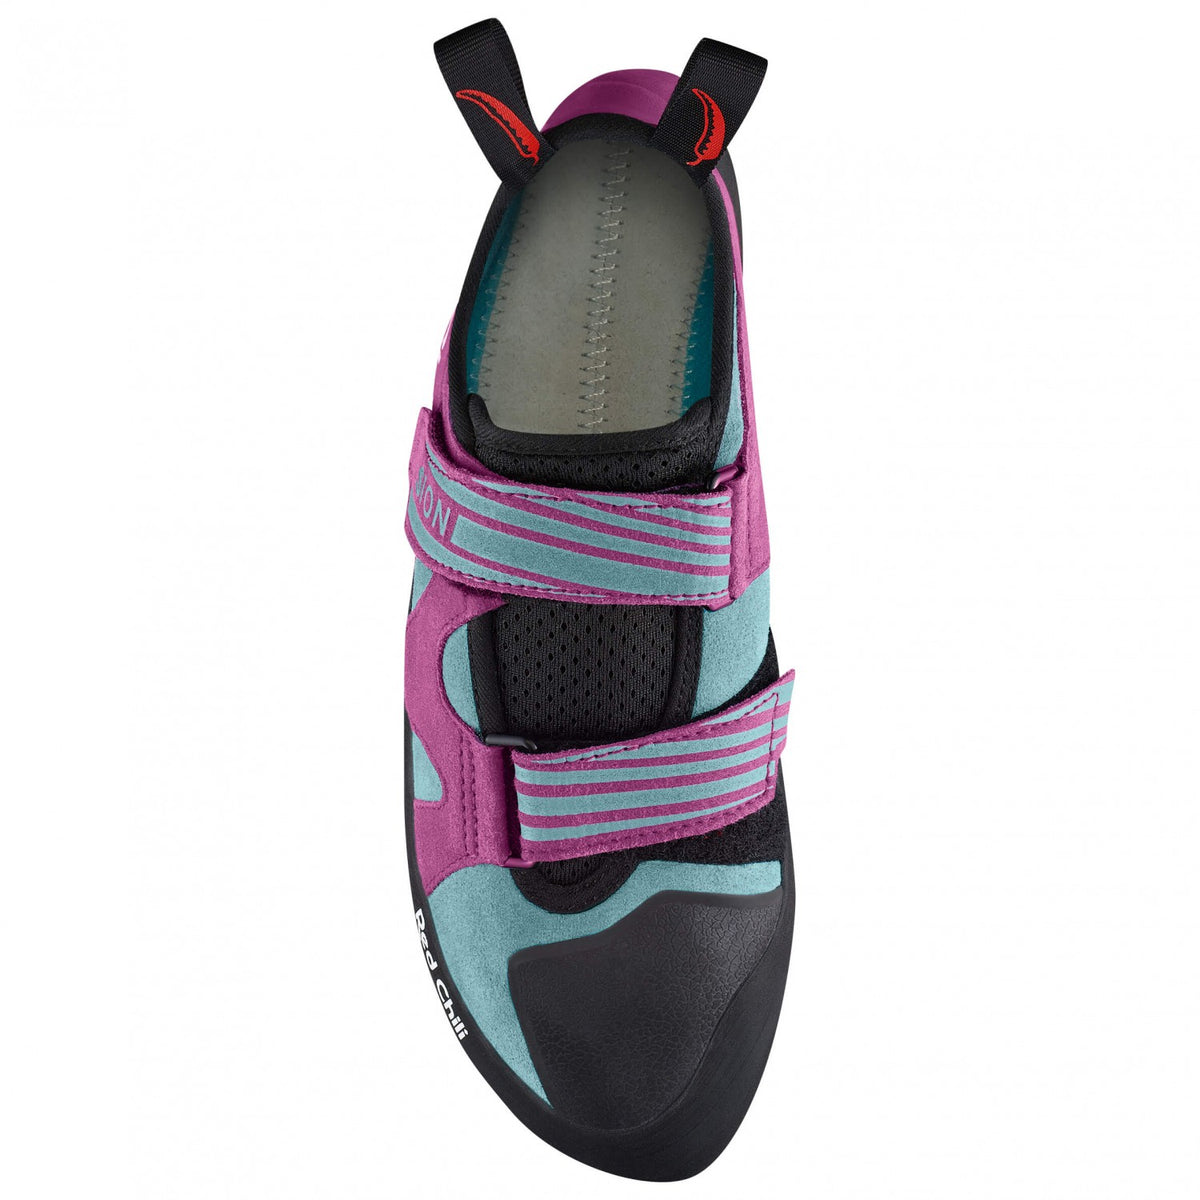 Red Chili Fusion VCR Womens climbing shoe, view from above showing strap detail